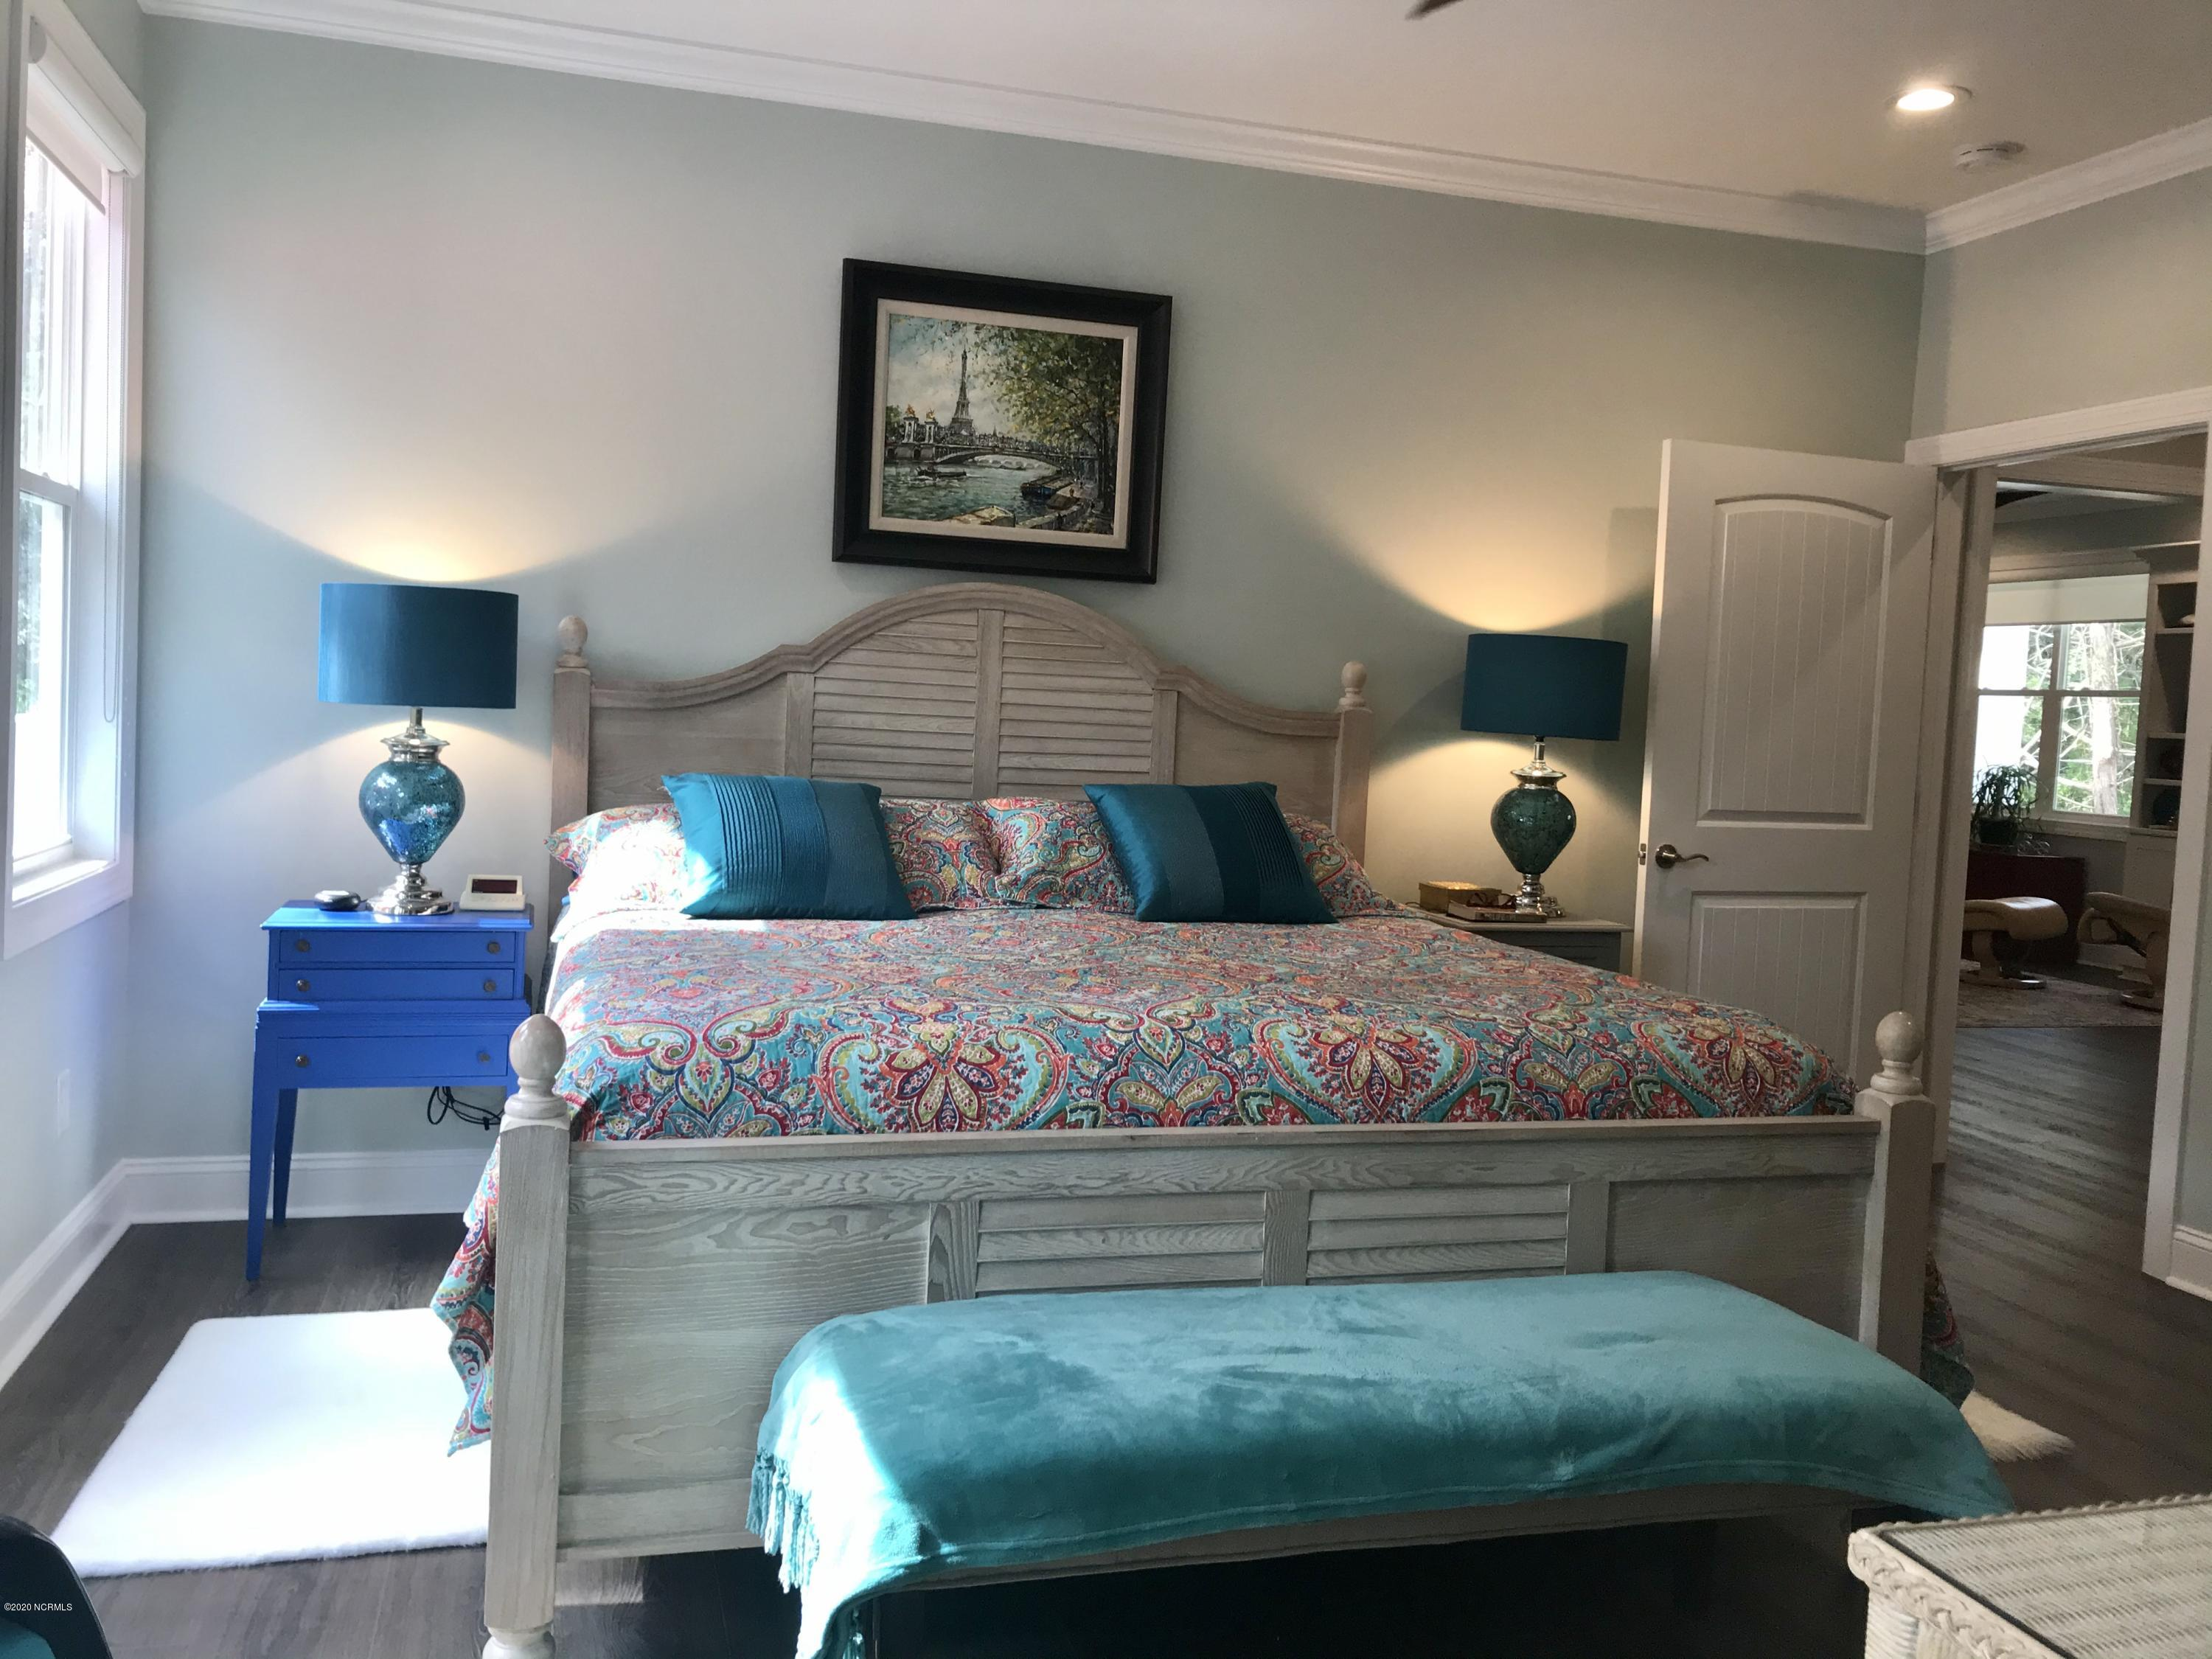 110 Evergreen Lane, Pine Knoll Shores, North Carolina 28512, 3 Bedrooms Bedrooms, 5 Rooms Rooms,2 BathroomsBathrooms,Single family residence,For sale,Evergreen,100190230